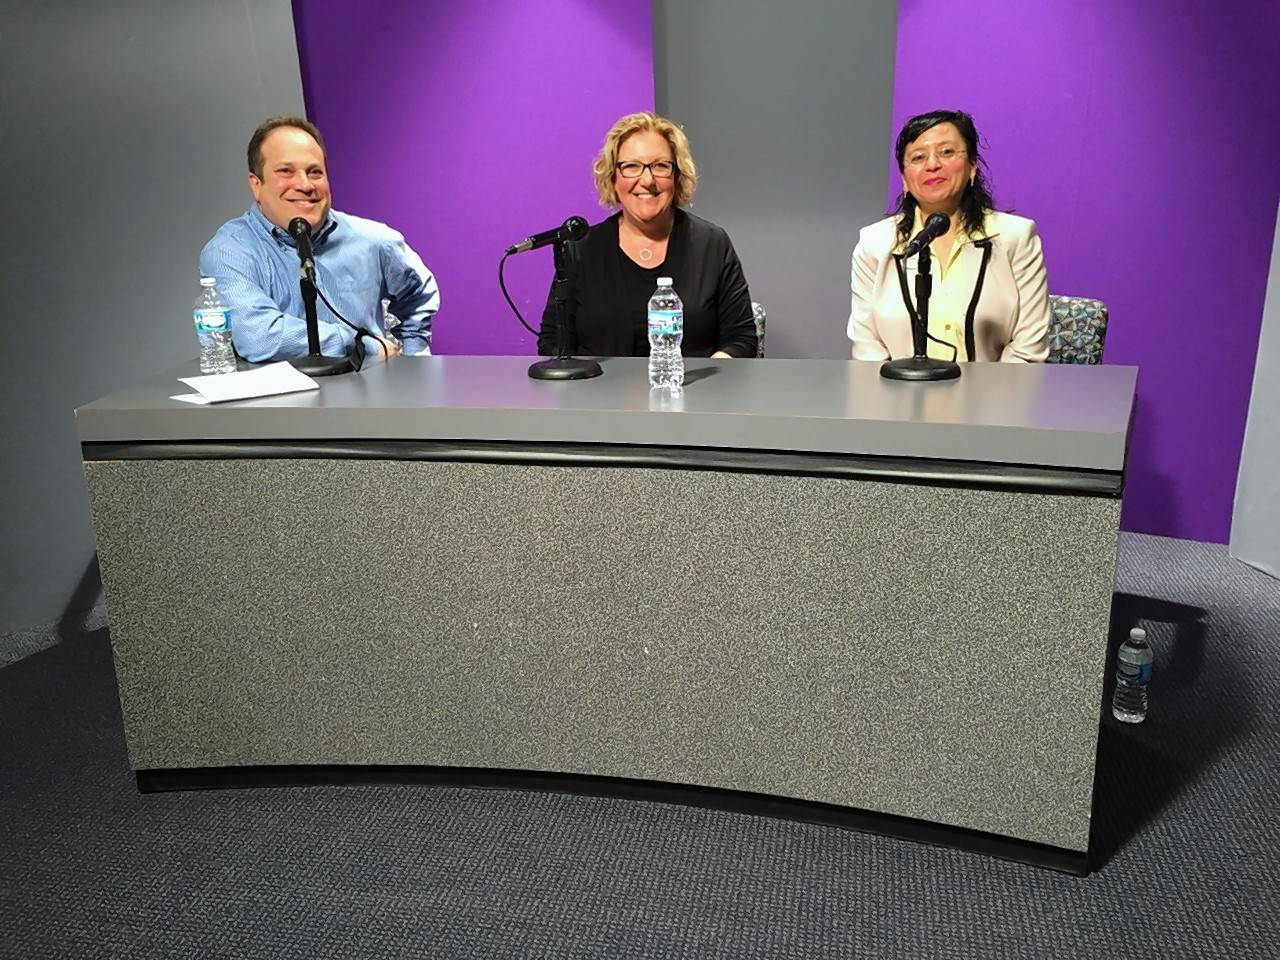 Josh Grodzin, Elk Grove Village director of business development and marketing, left, Kathryn Miller, owner and president of HST Materials; and Gladys Moscoso, administrator of EM Metal Fabricators, appear on Strictly Business, a new podcast hosted by Grodzin.